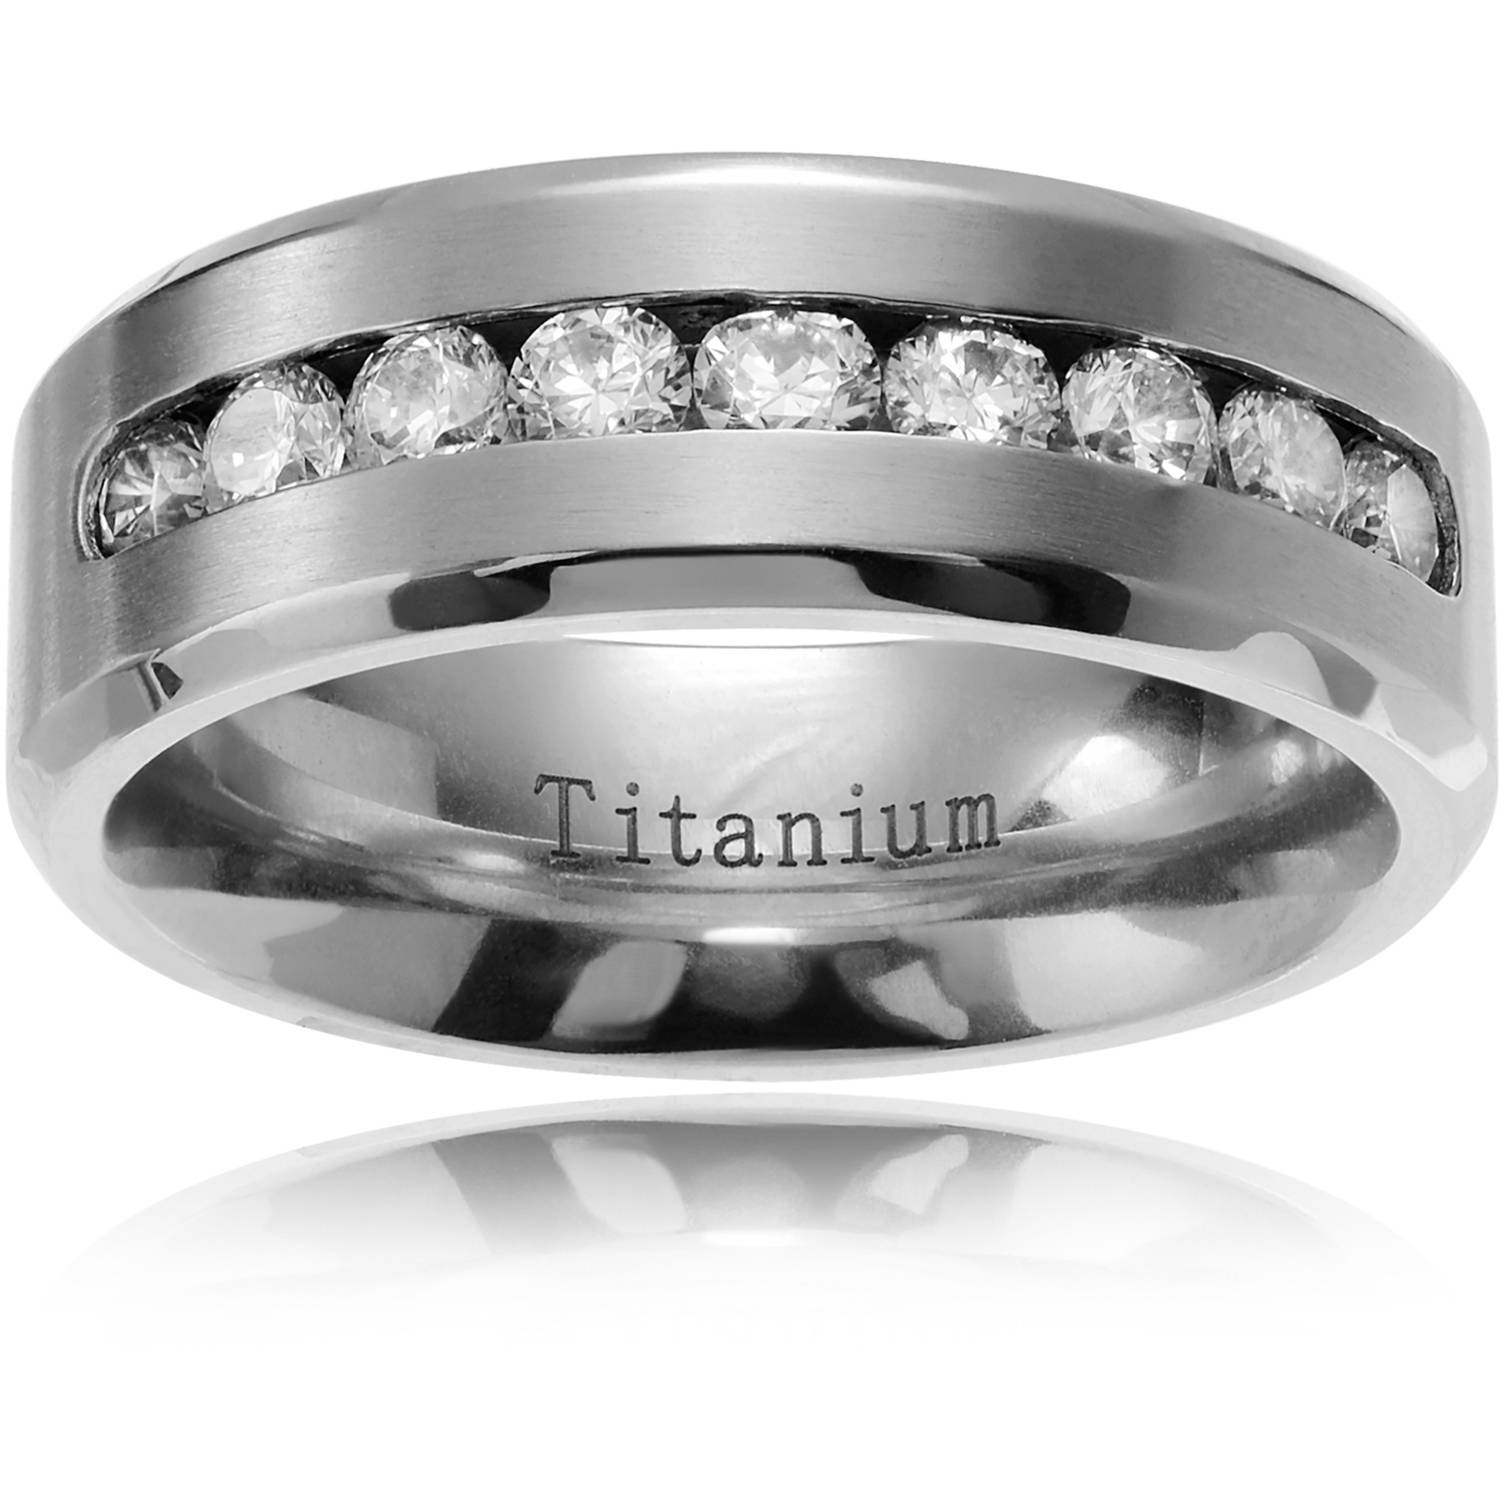 Daxx Men's CZ Titanium Brushed Wedding Ring, 8mm